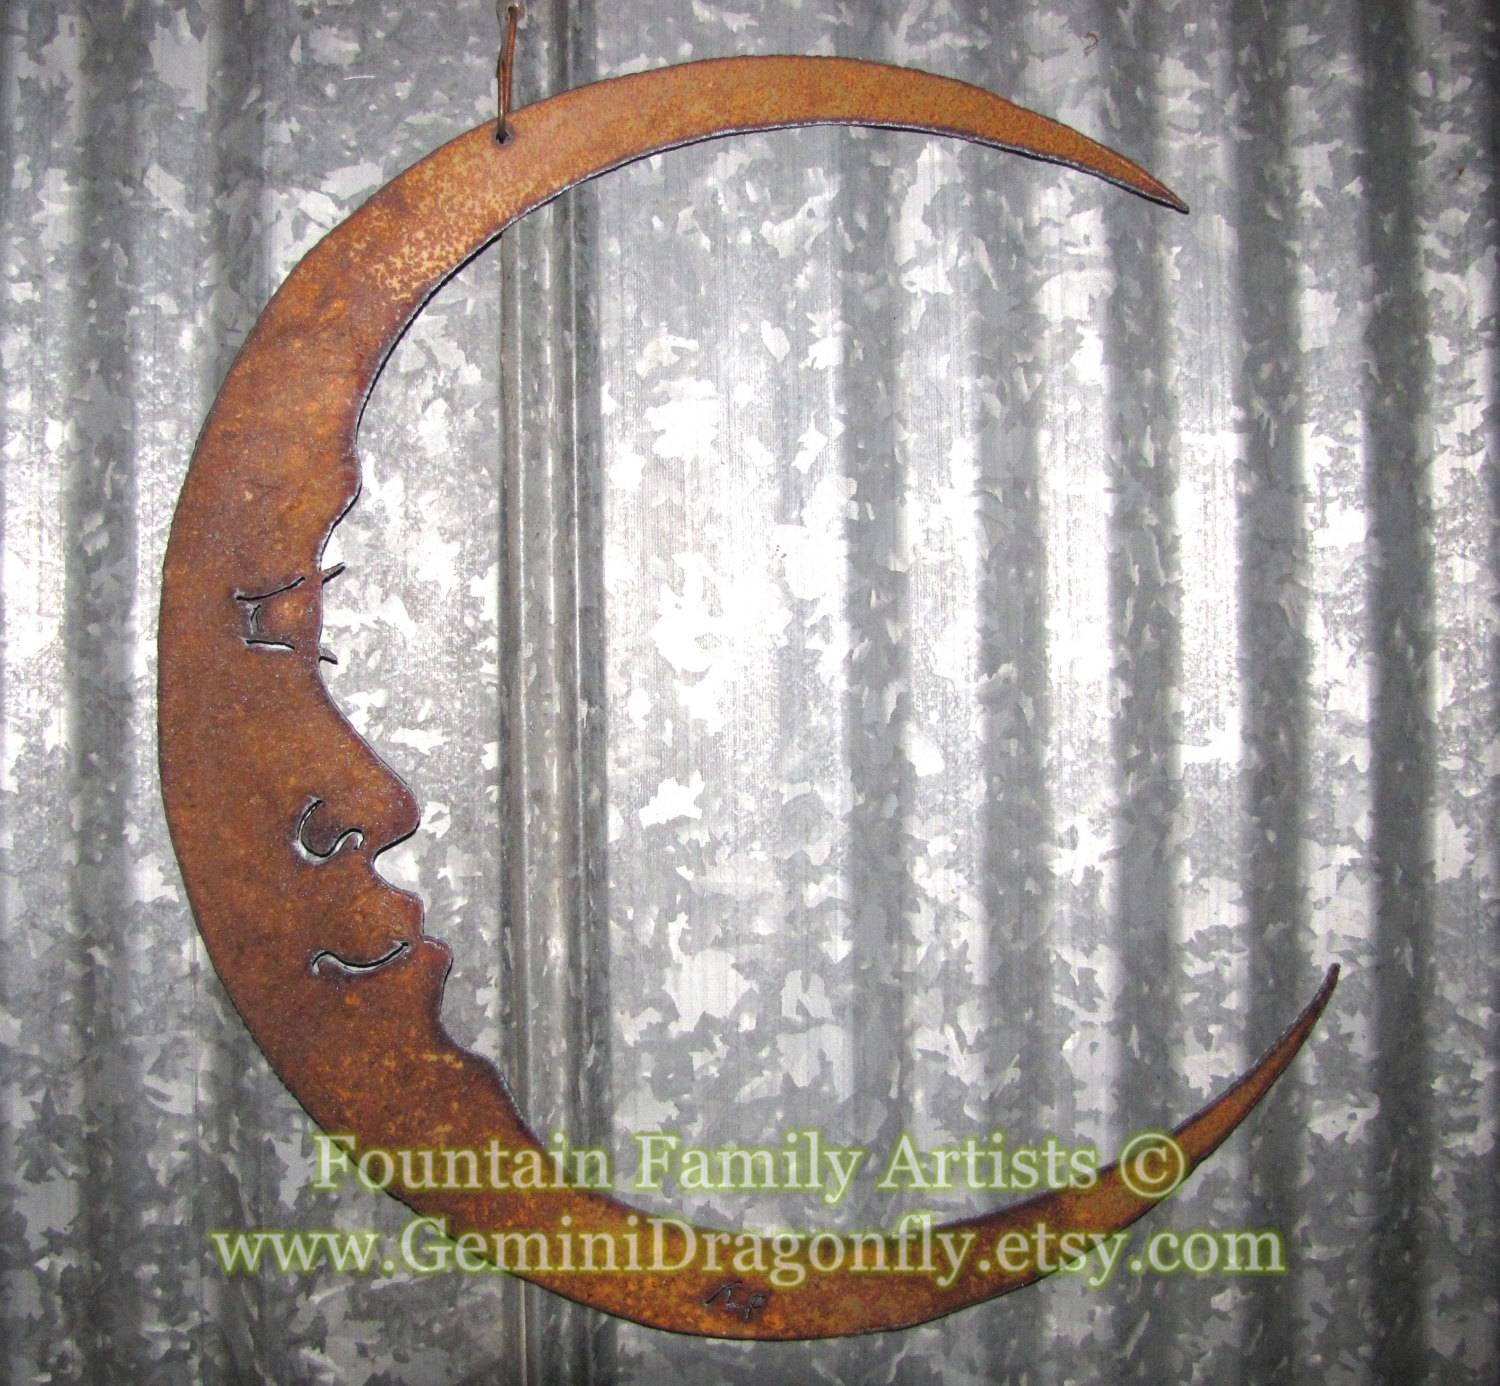 Rusty Crescent Moon / Man In The Moon Metal Garden Art / Recycled Regarding Most Current Moon Outdoor Metal Wall Art (View 6 of 20)